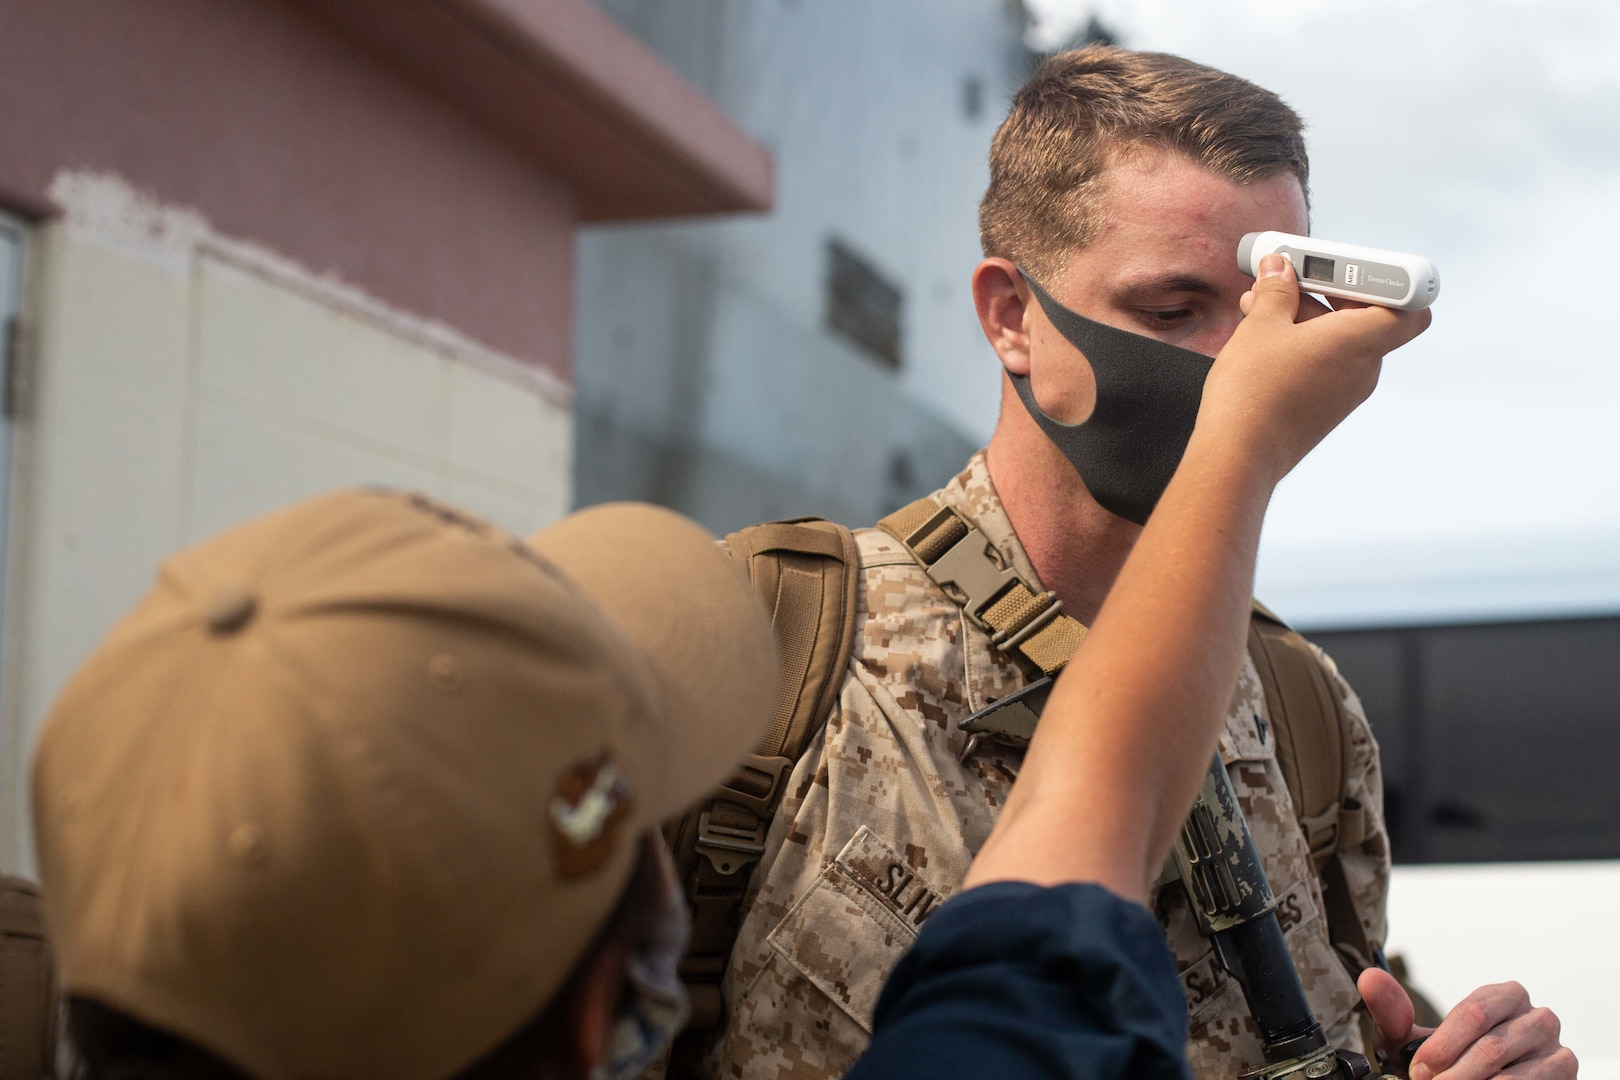 Expeditionary Strike Group 7 Sailors Stay COVID-Free While at Sea